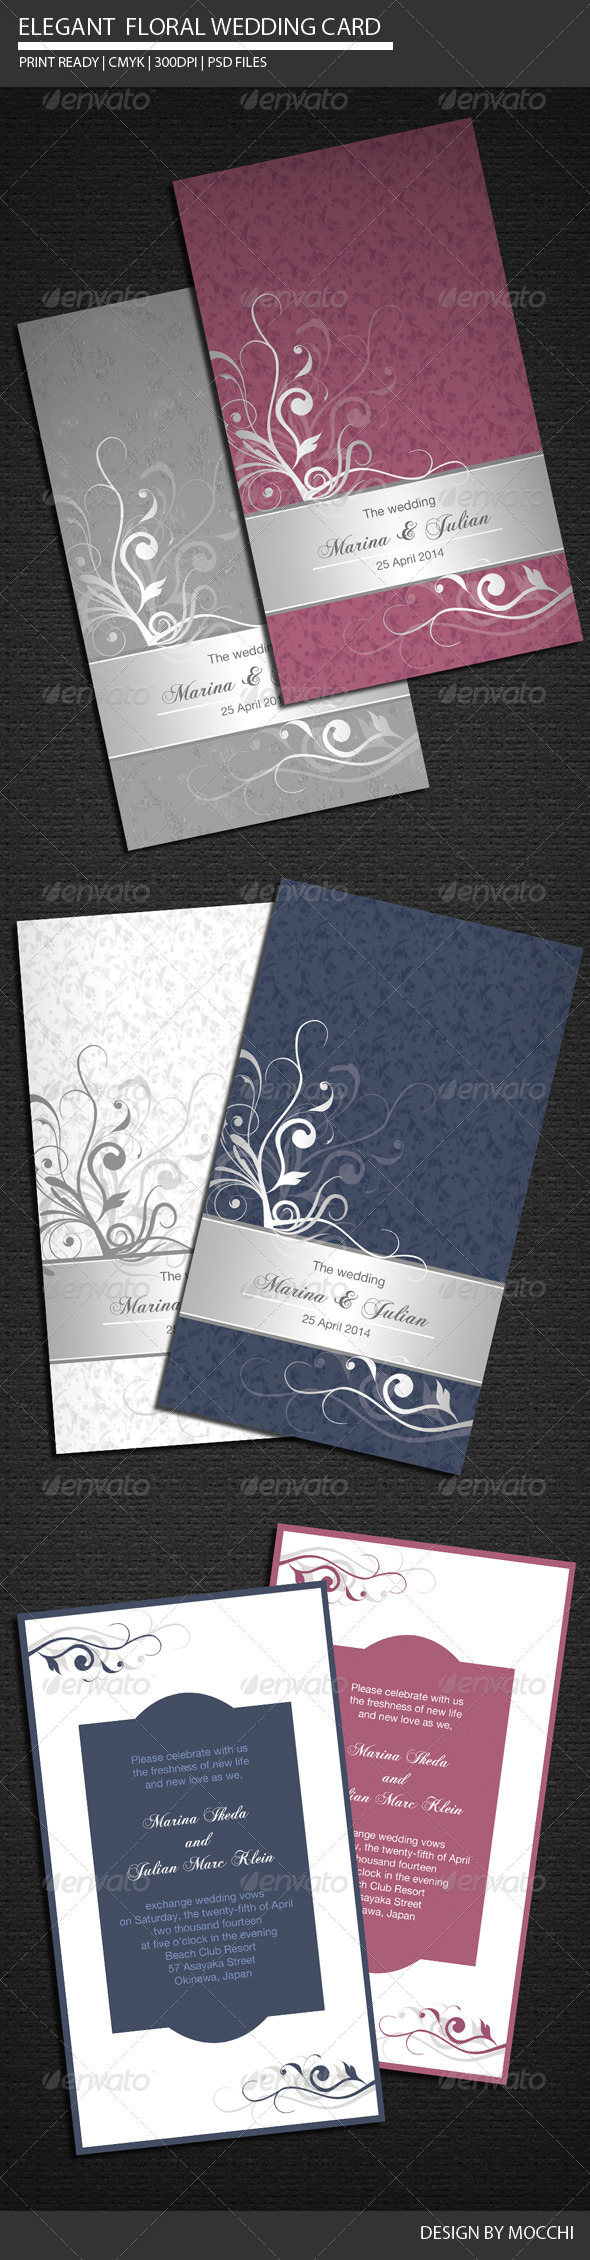 GraphicRiver Elegant Floral Wedding Card 2291535